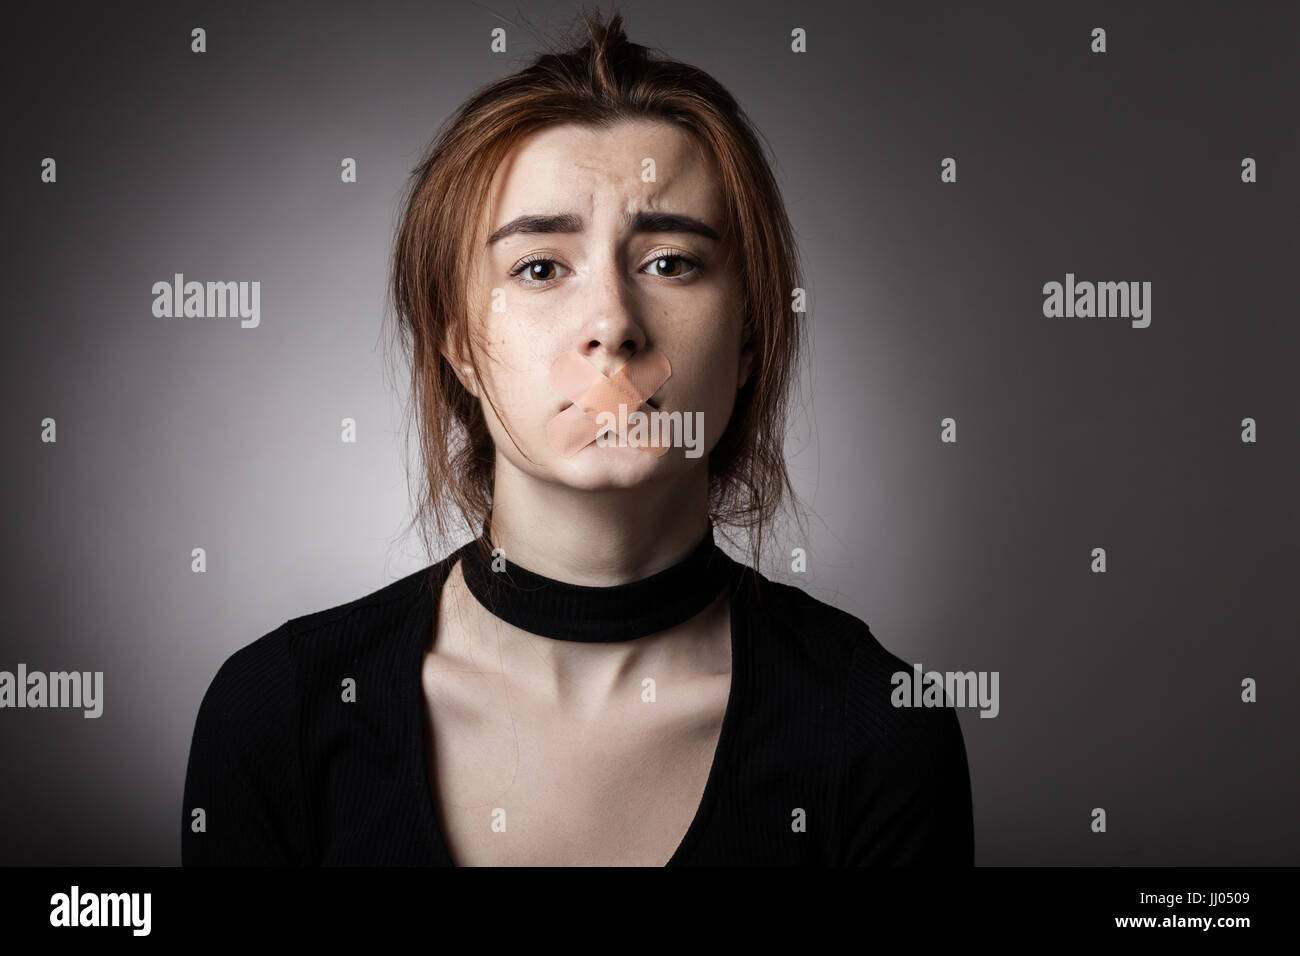 sad girl with plaster on her mouth looking at camera at gray background Stock Photo